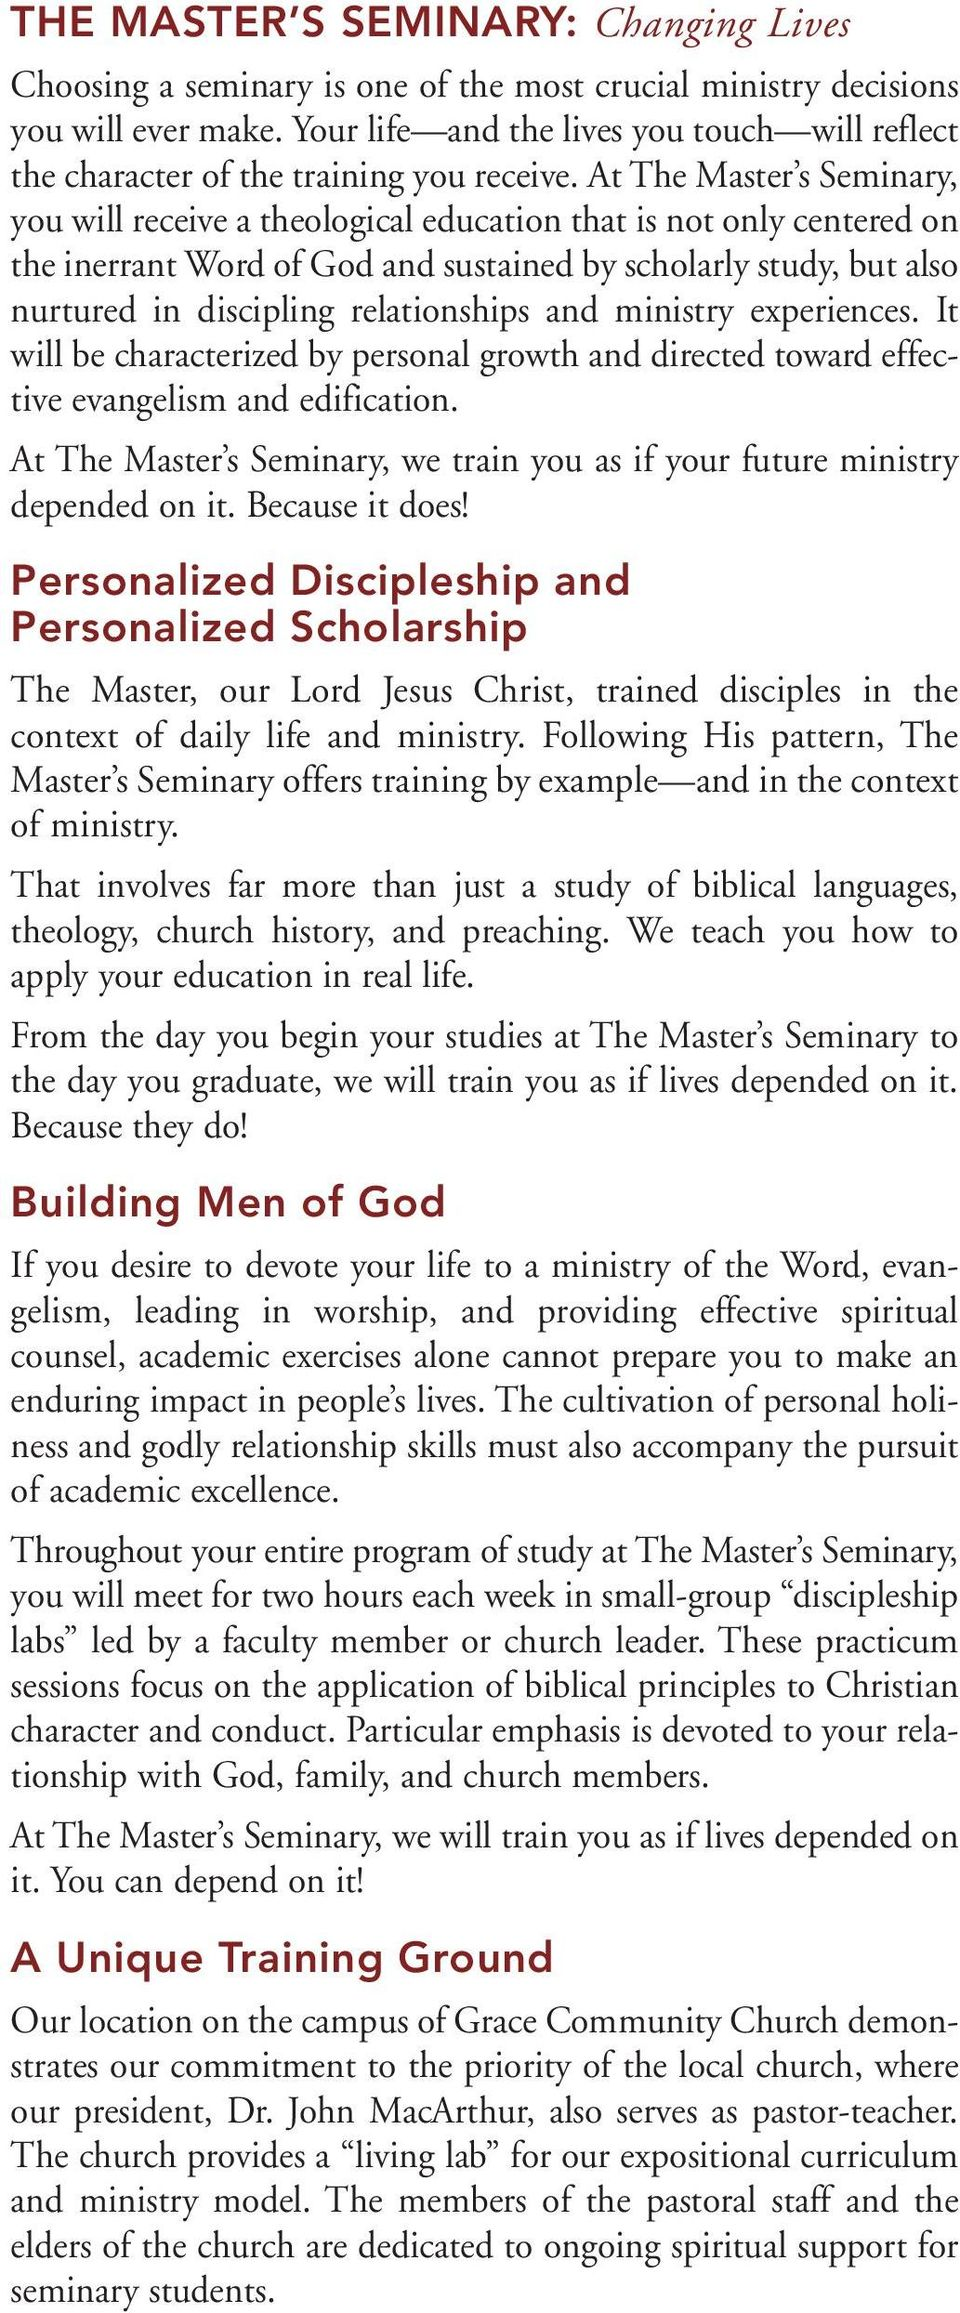 At The Master s Seminary, you will receive a theological education that is not only centered on the inerrant Word of God and sustained by scholarly study, but also nurtured in discipling